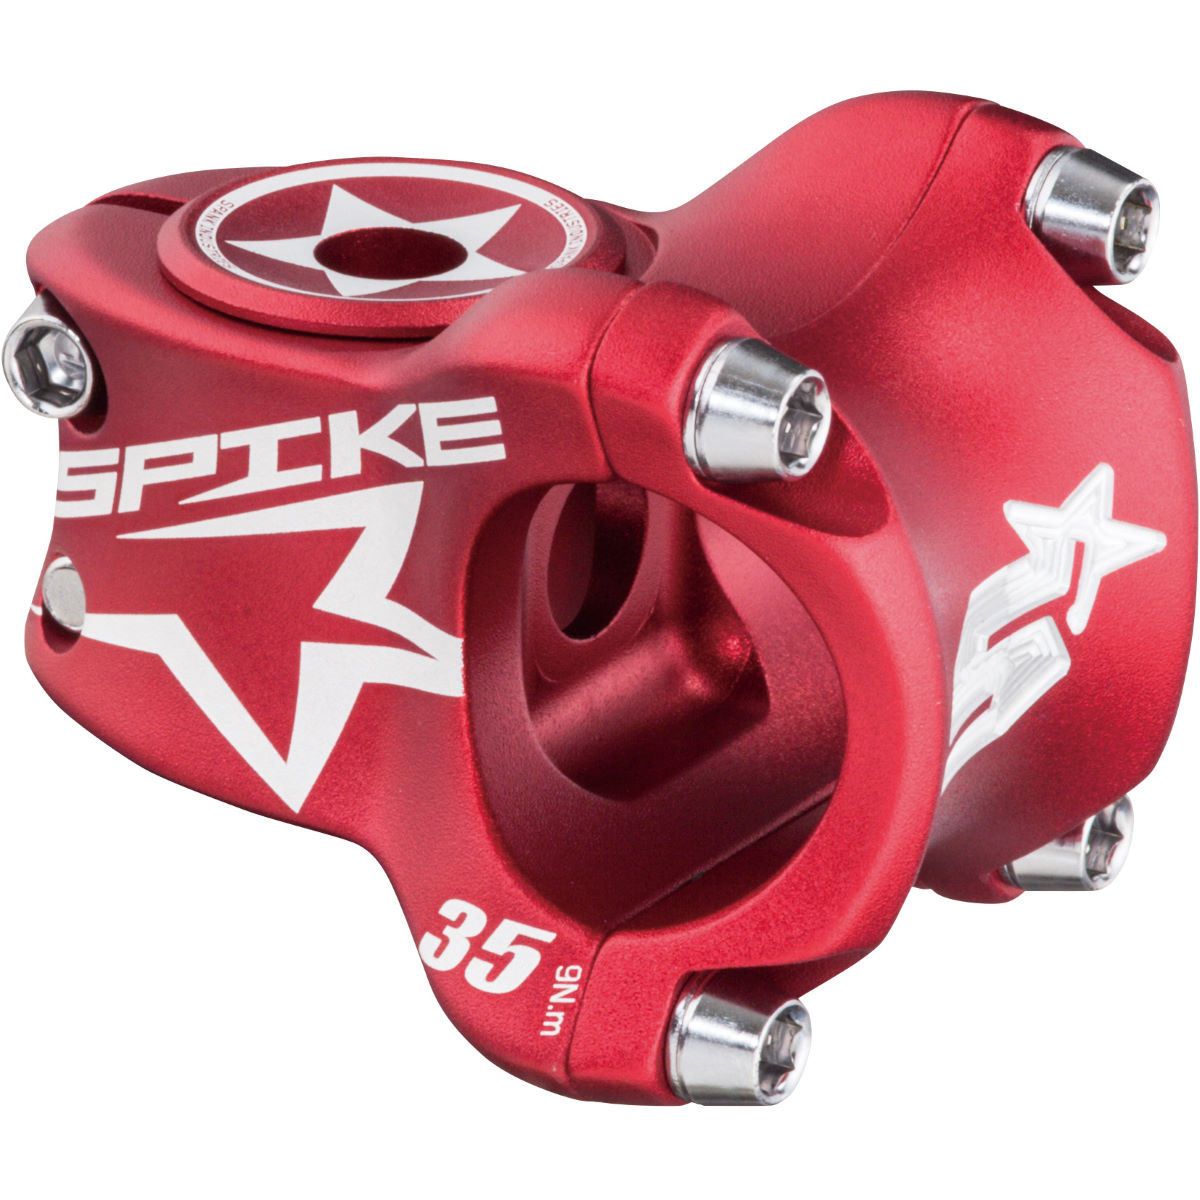 Potence Spank Spike Race - 50mm 31.8mm 1.1/8'' Rouge Potences